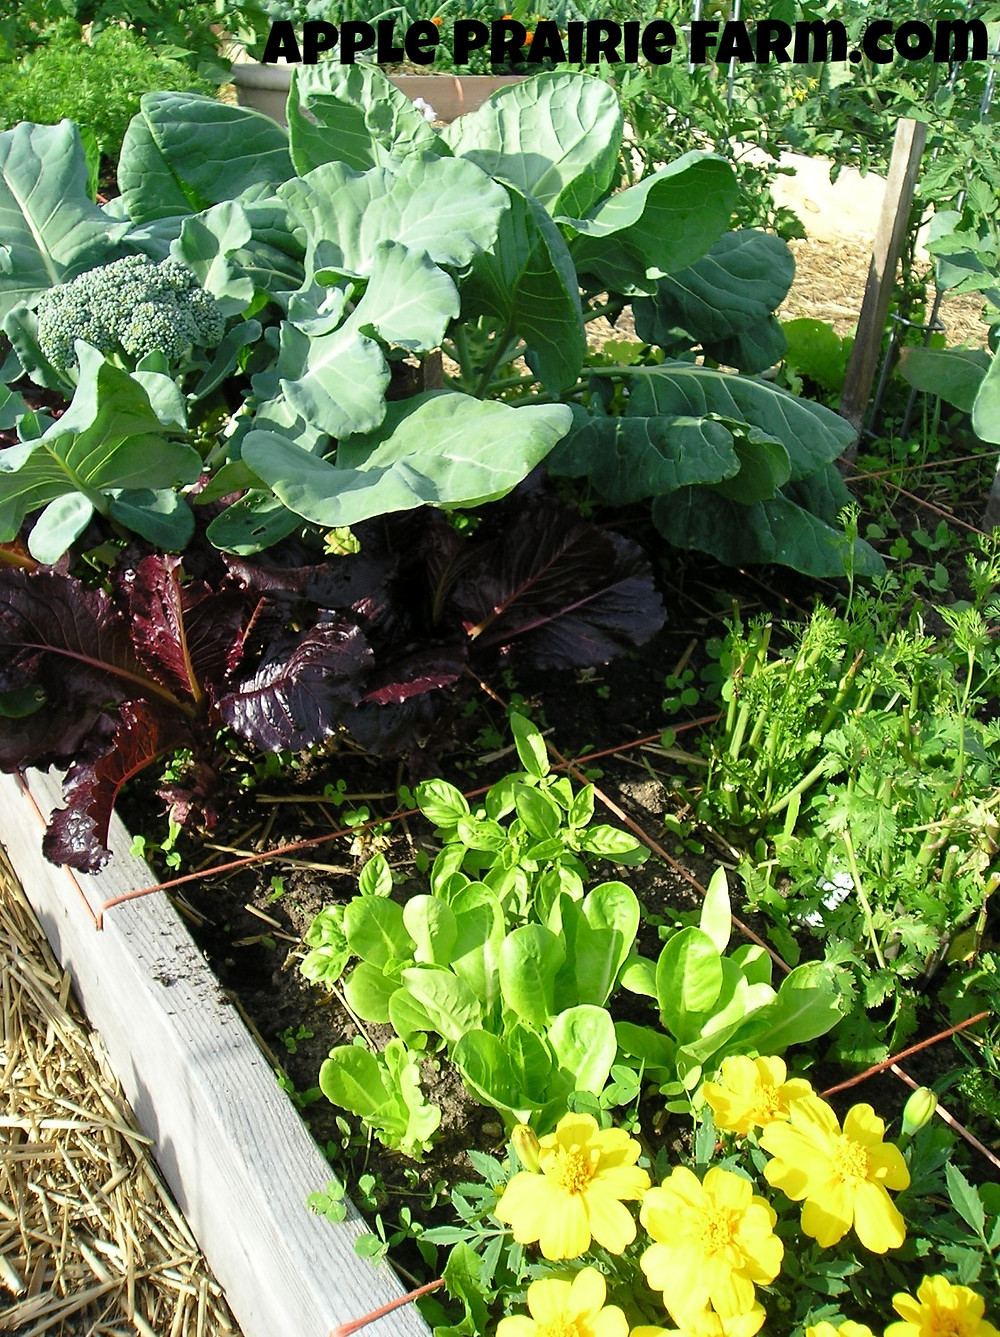 companion planting, Little Gem Romaine Lettuce, onions, peppers, raised beds, square foot gardening, broccoli, tomato plant, cilantro